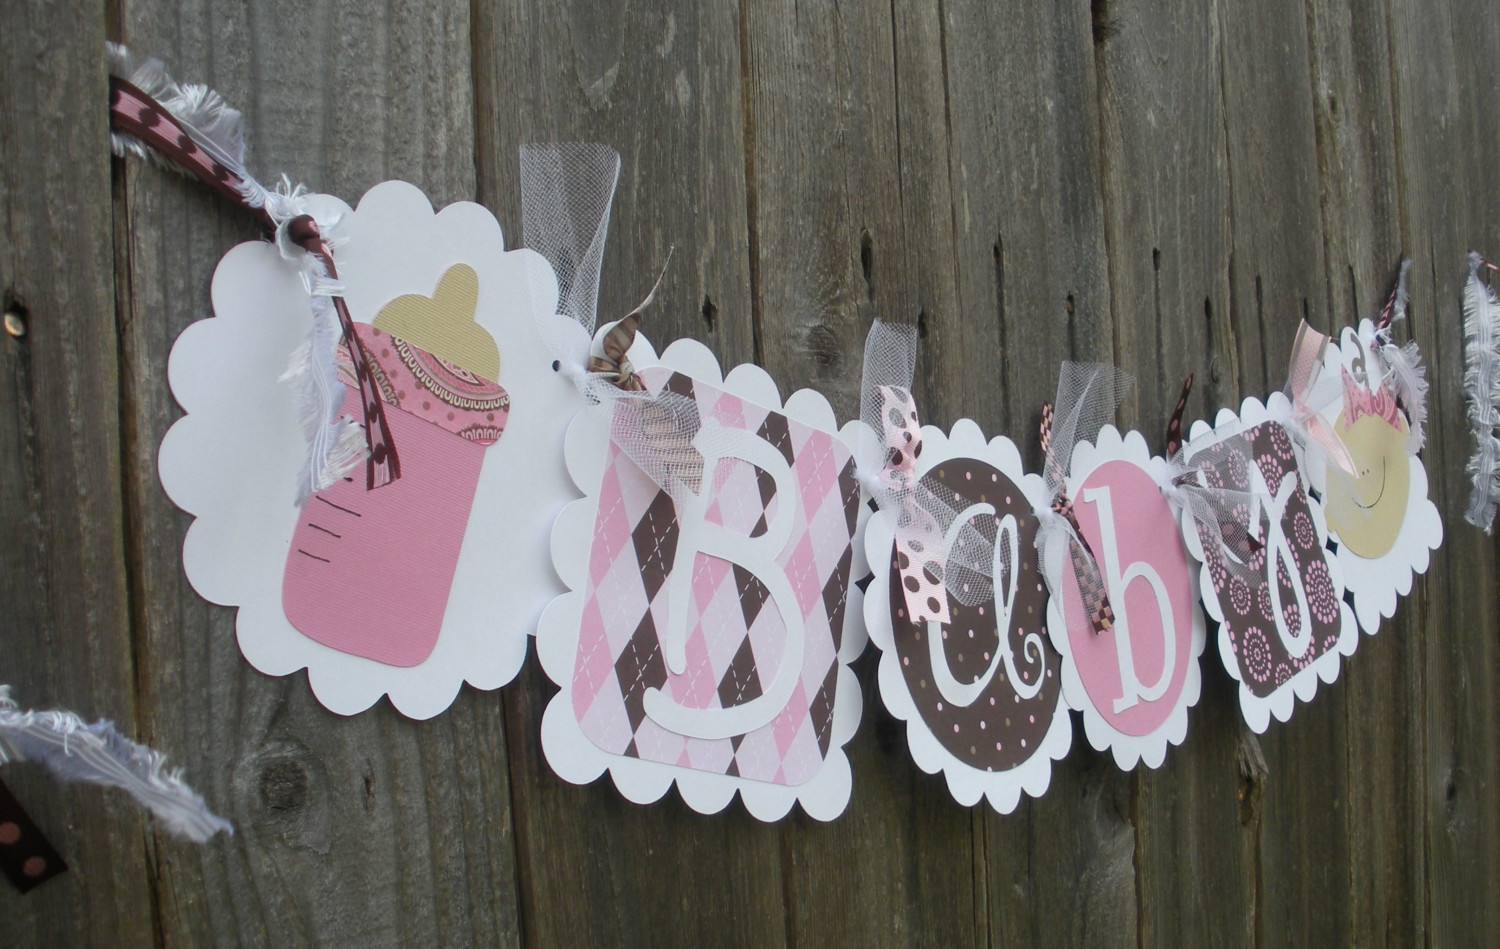 Diy Your Very Own Baby Shower Banner With These Great Ideas